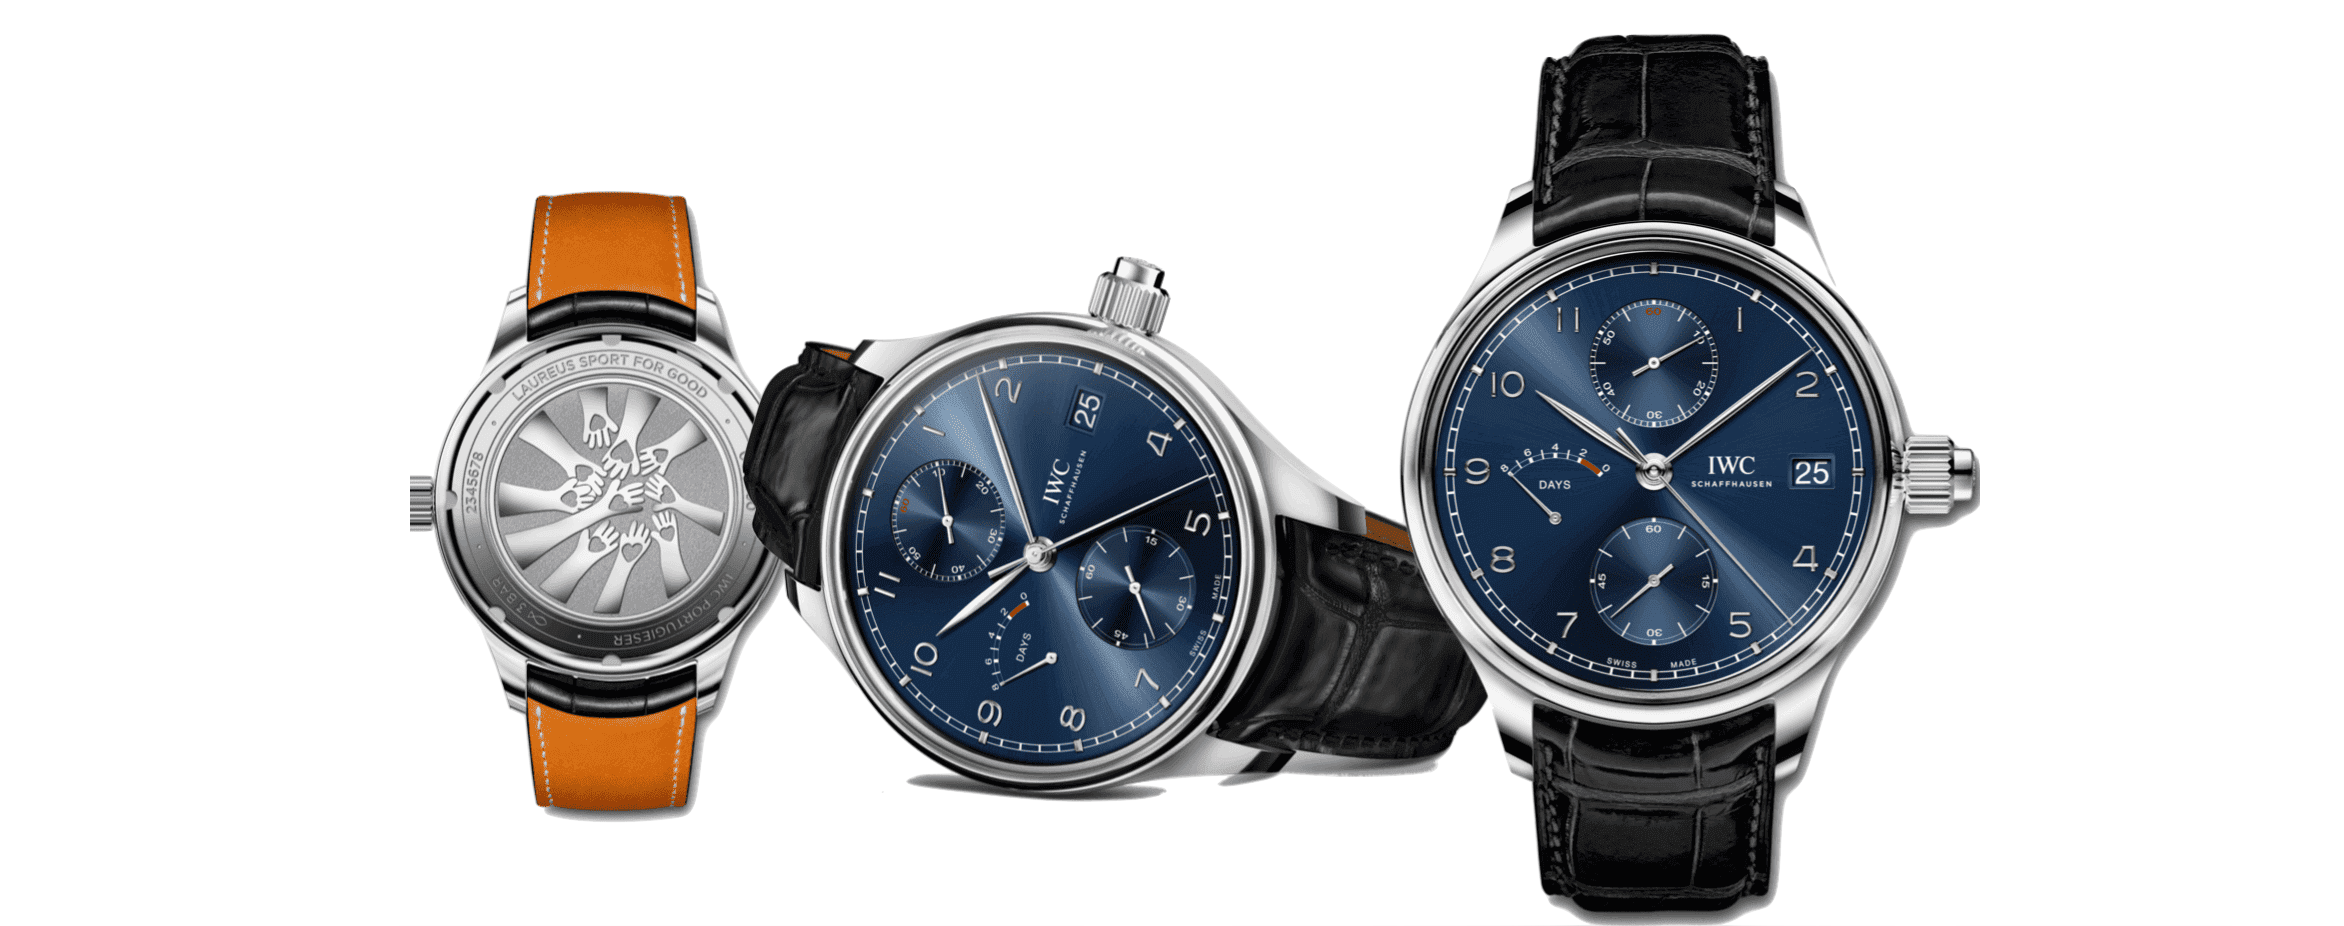 IWC Schaffhausen Uhr in der 14.Sonderedition für die 20. Laureus World Sports Awards 2020